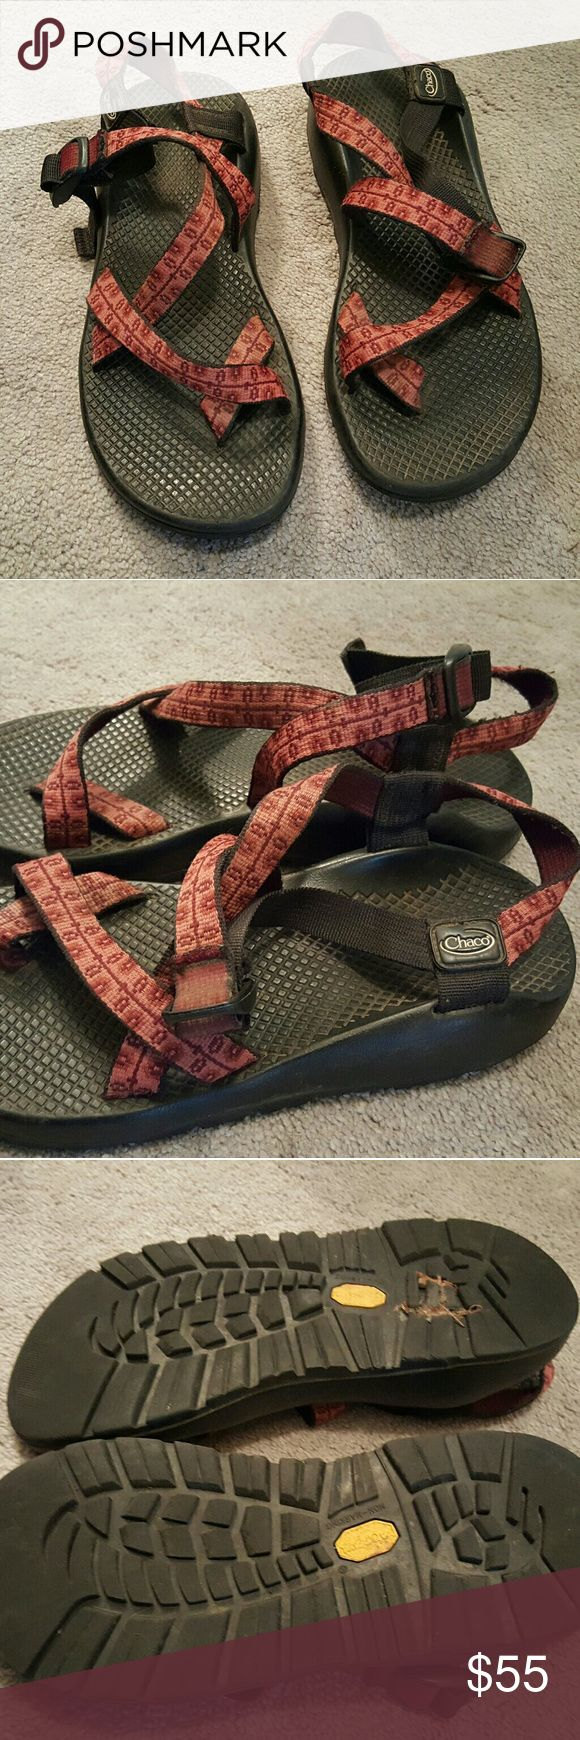 Women's Chacos Sandals Women's Chacos Sandals in deep red. Only worn a handful of times. Chacos Shoes Sandals